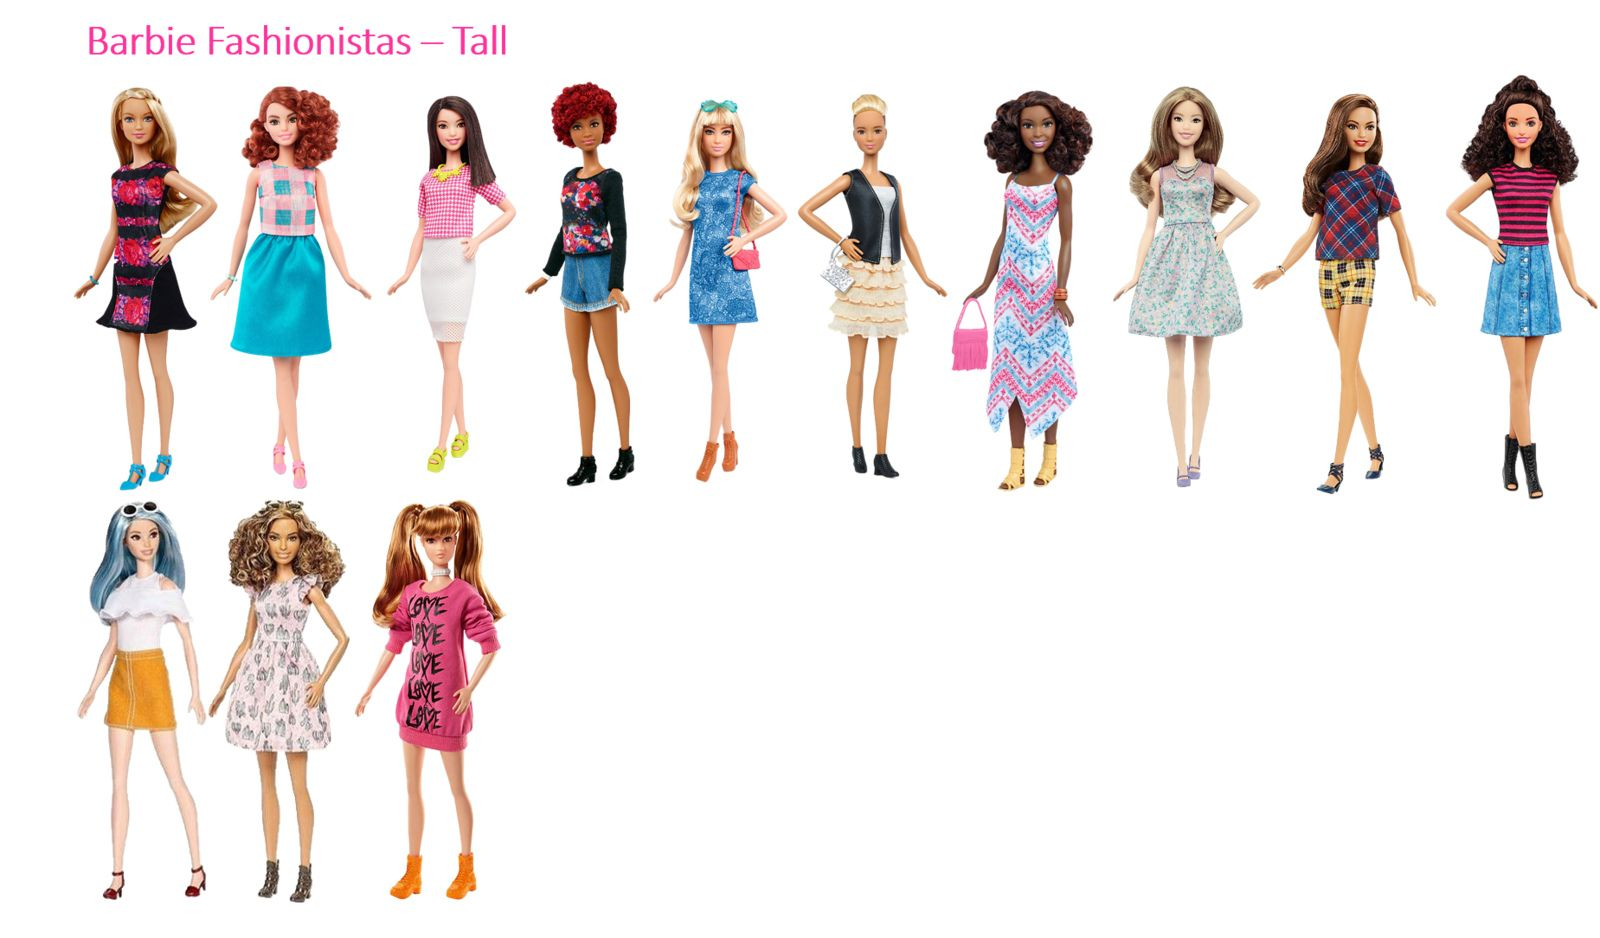 Watch - Is a body barbie possible infographic video